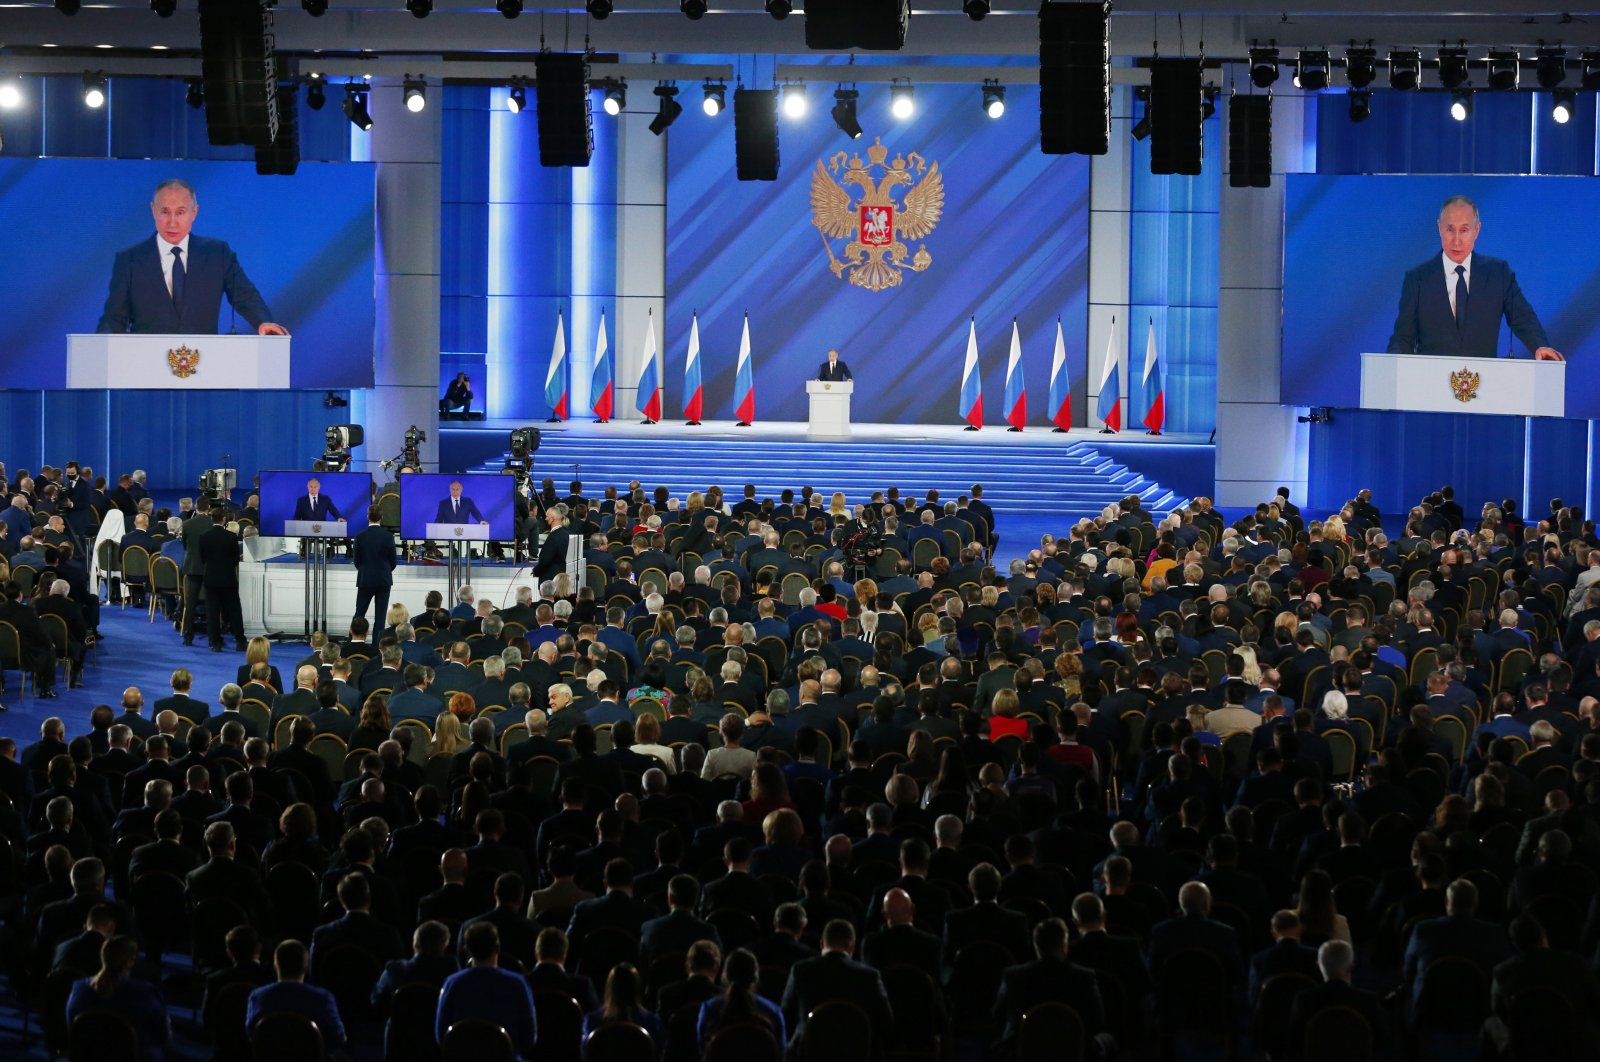 Russian President Vladimir Putin (C), gives his annual state of the nation address in Manezh, Moscow, Russia, April 21, 2021. (AP Photo)